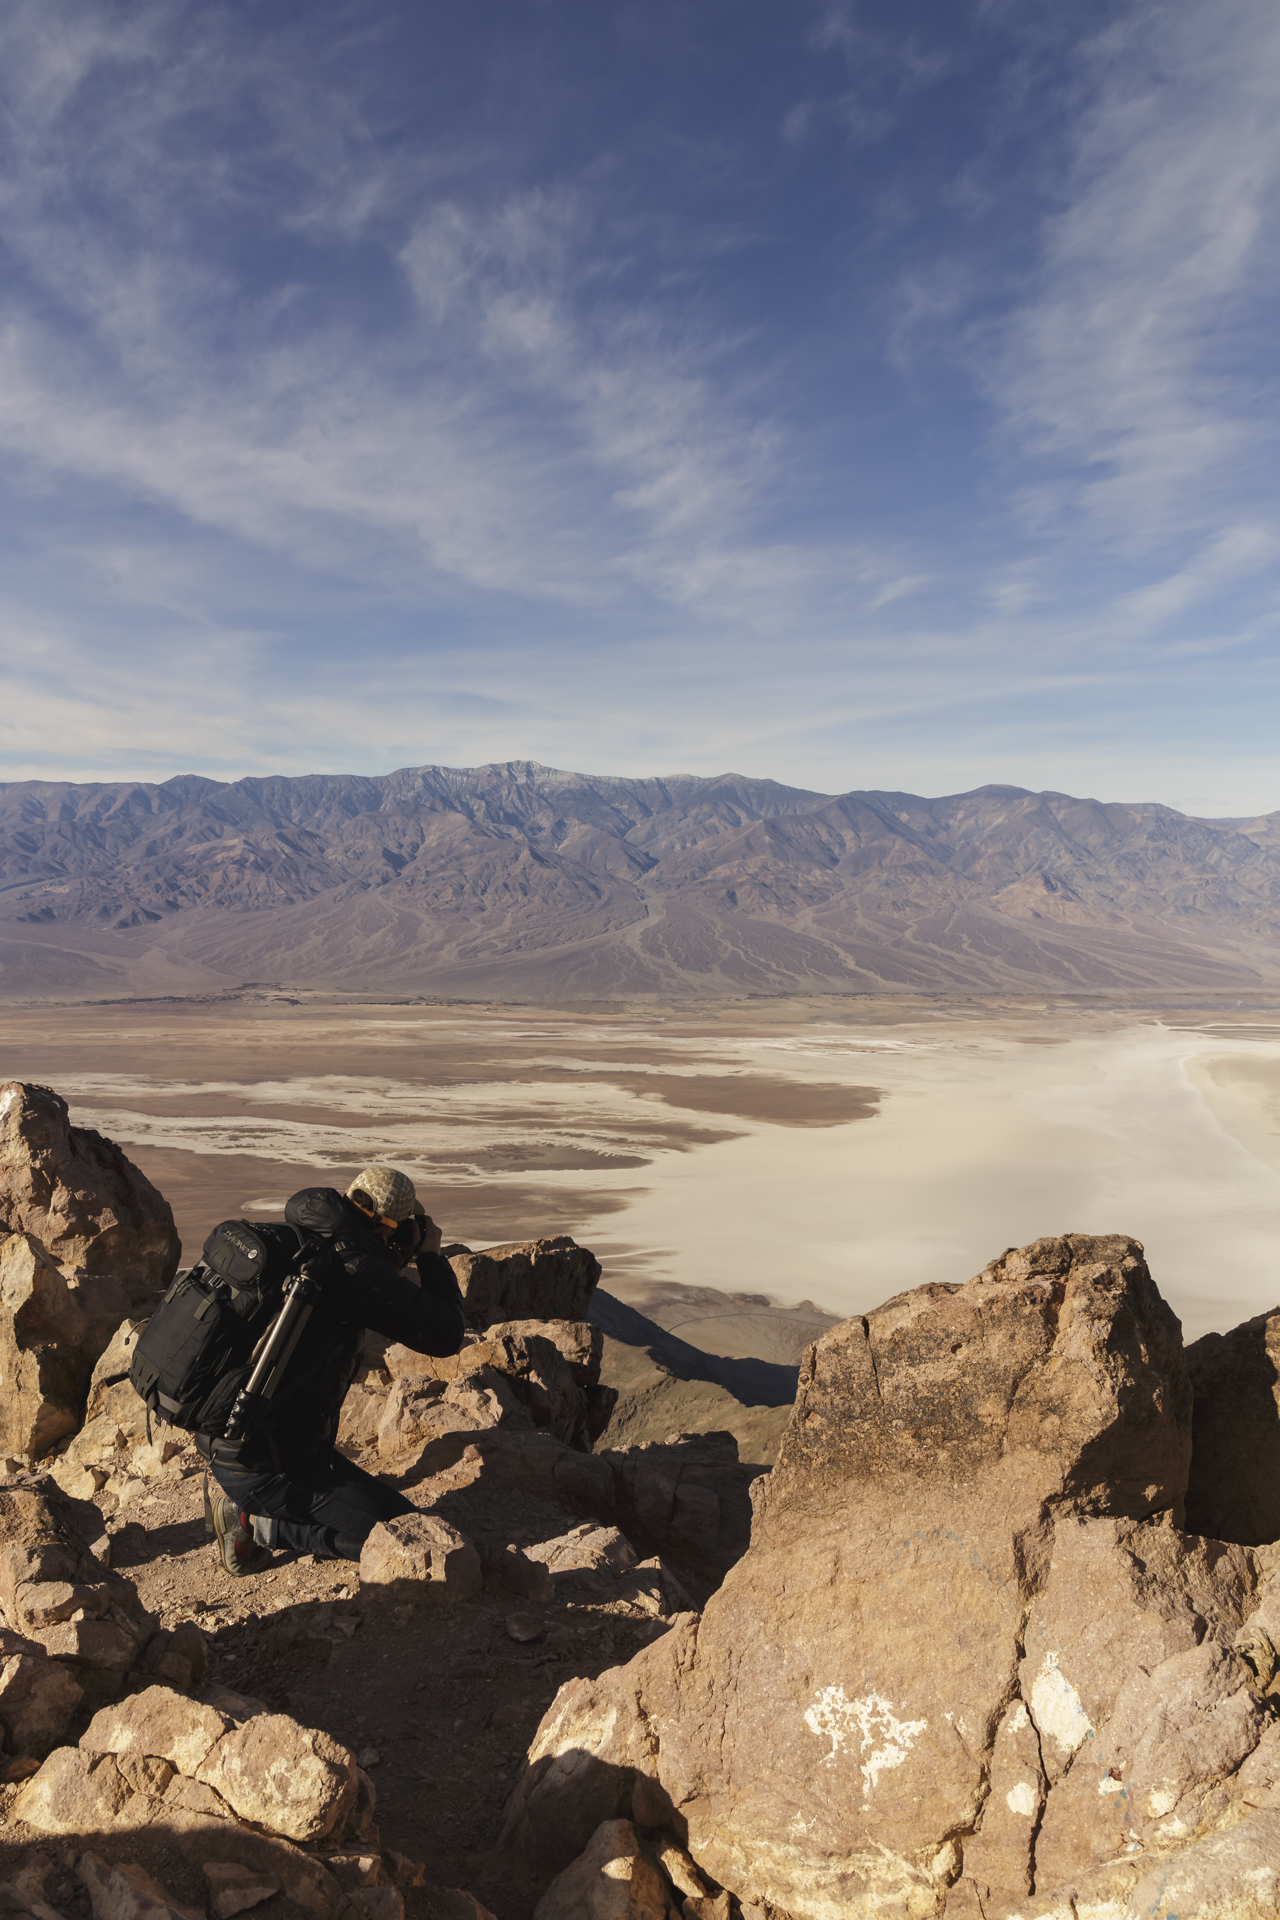 Framing the valley floor in the younger rock on the peaks around Dante's View. Death Valley National Park, Near Death Valley Junction, CA.